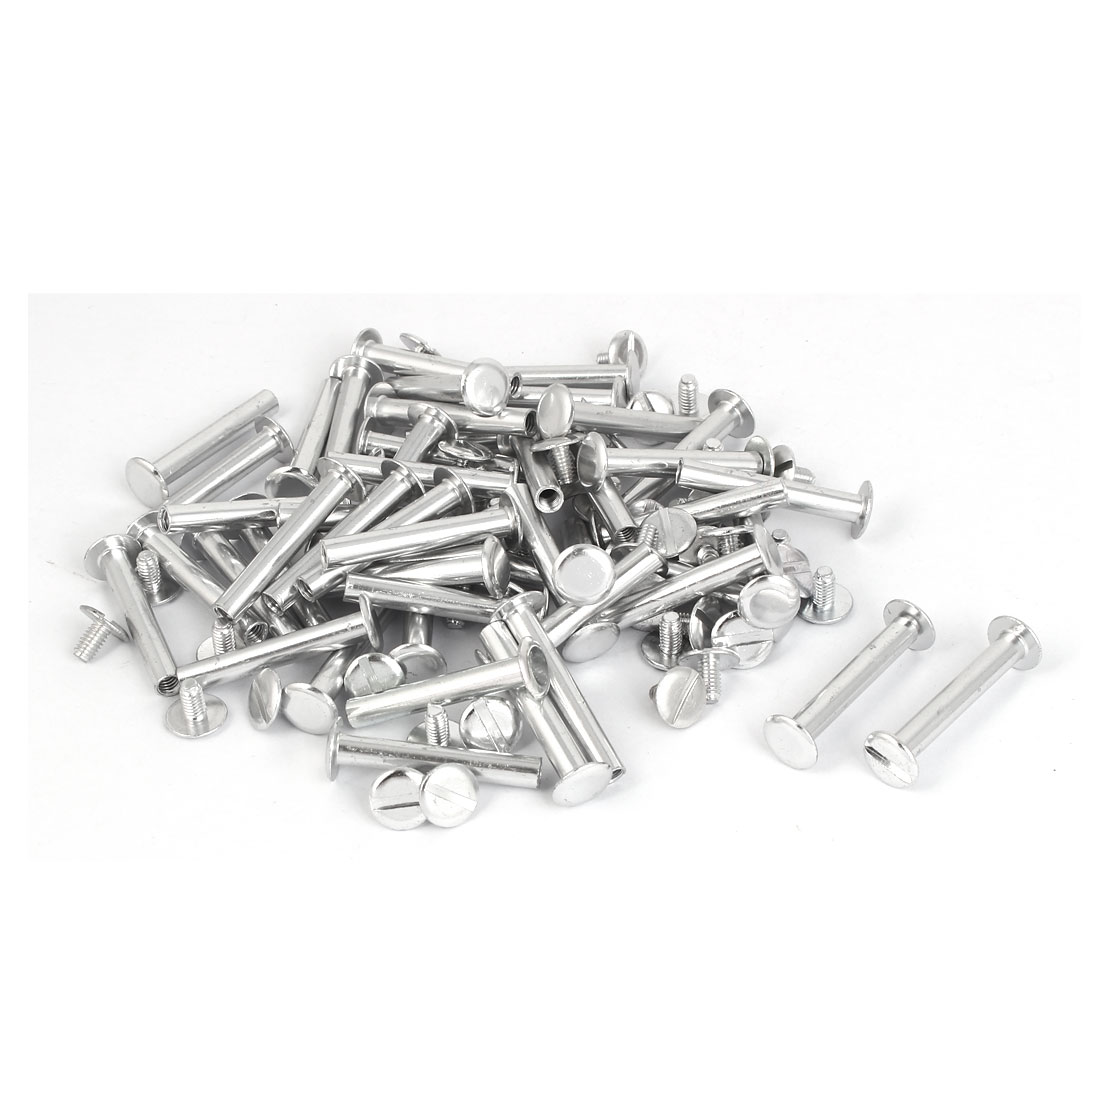 Purse Belts Photo Albums Aluminum Binding Chicago Screws Posts M5 x 33mm 50 Pcs